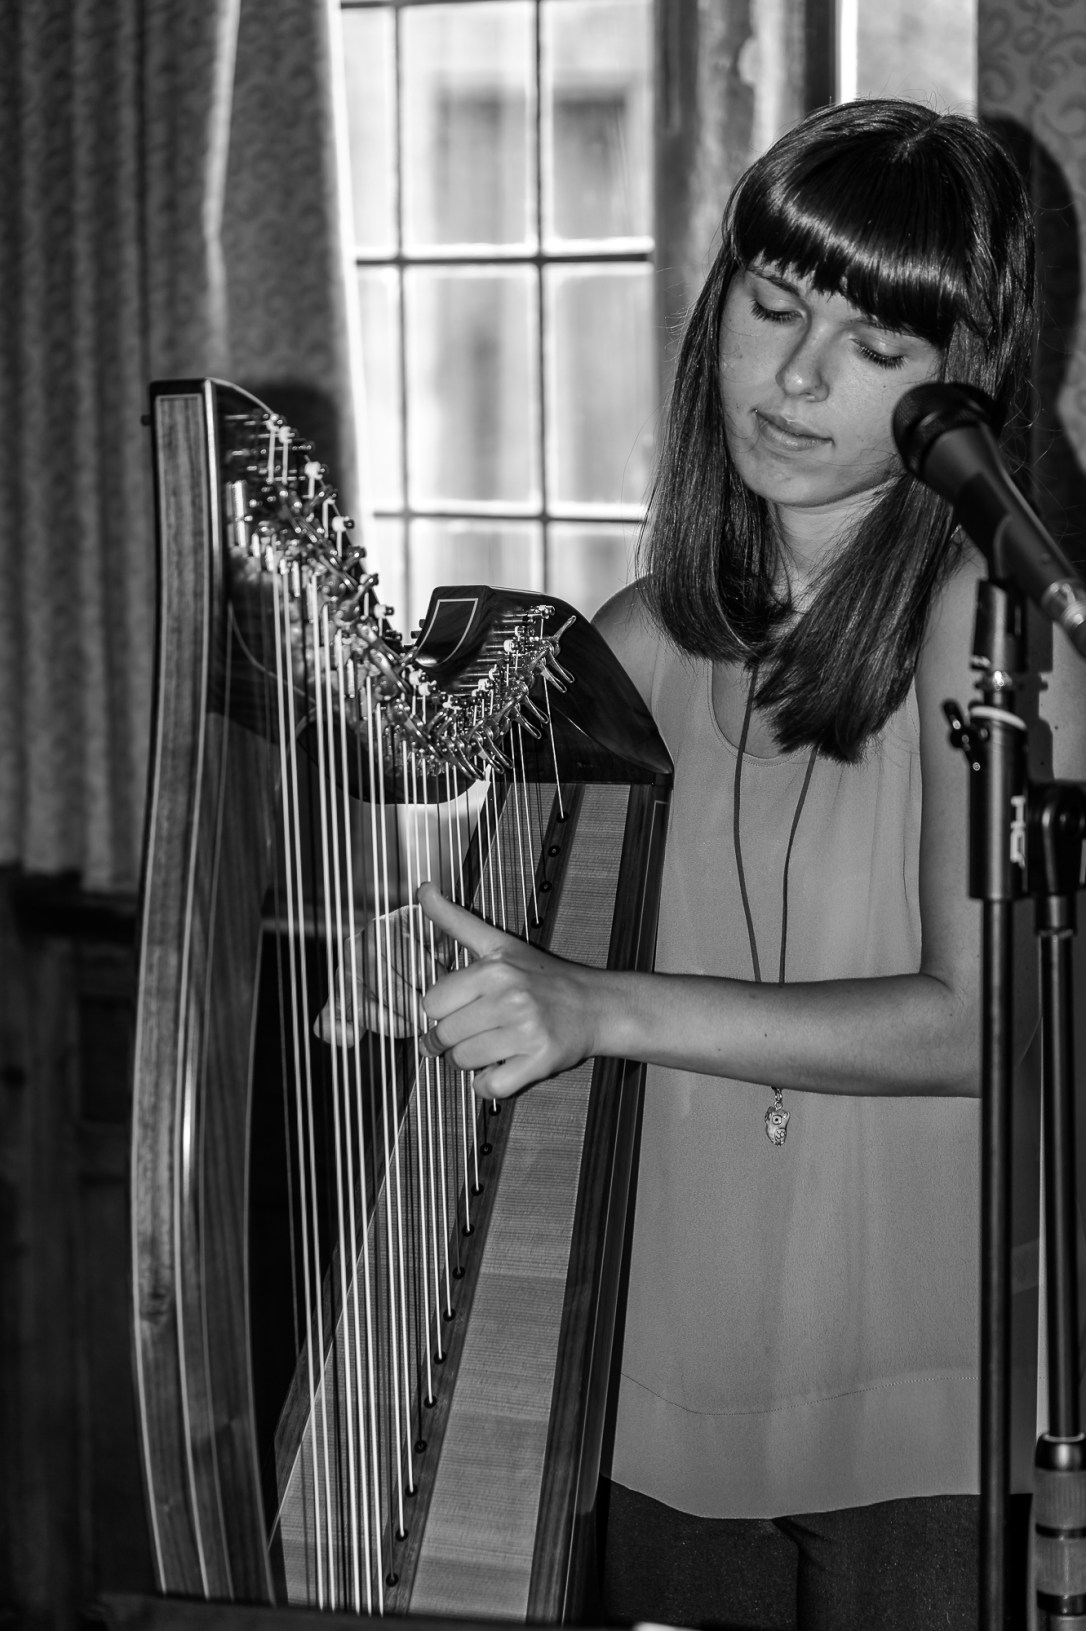 Female harpist with small 27 string Mark Norris Harp and Singing Microphone, black and white image